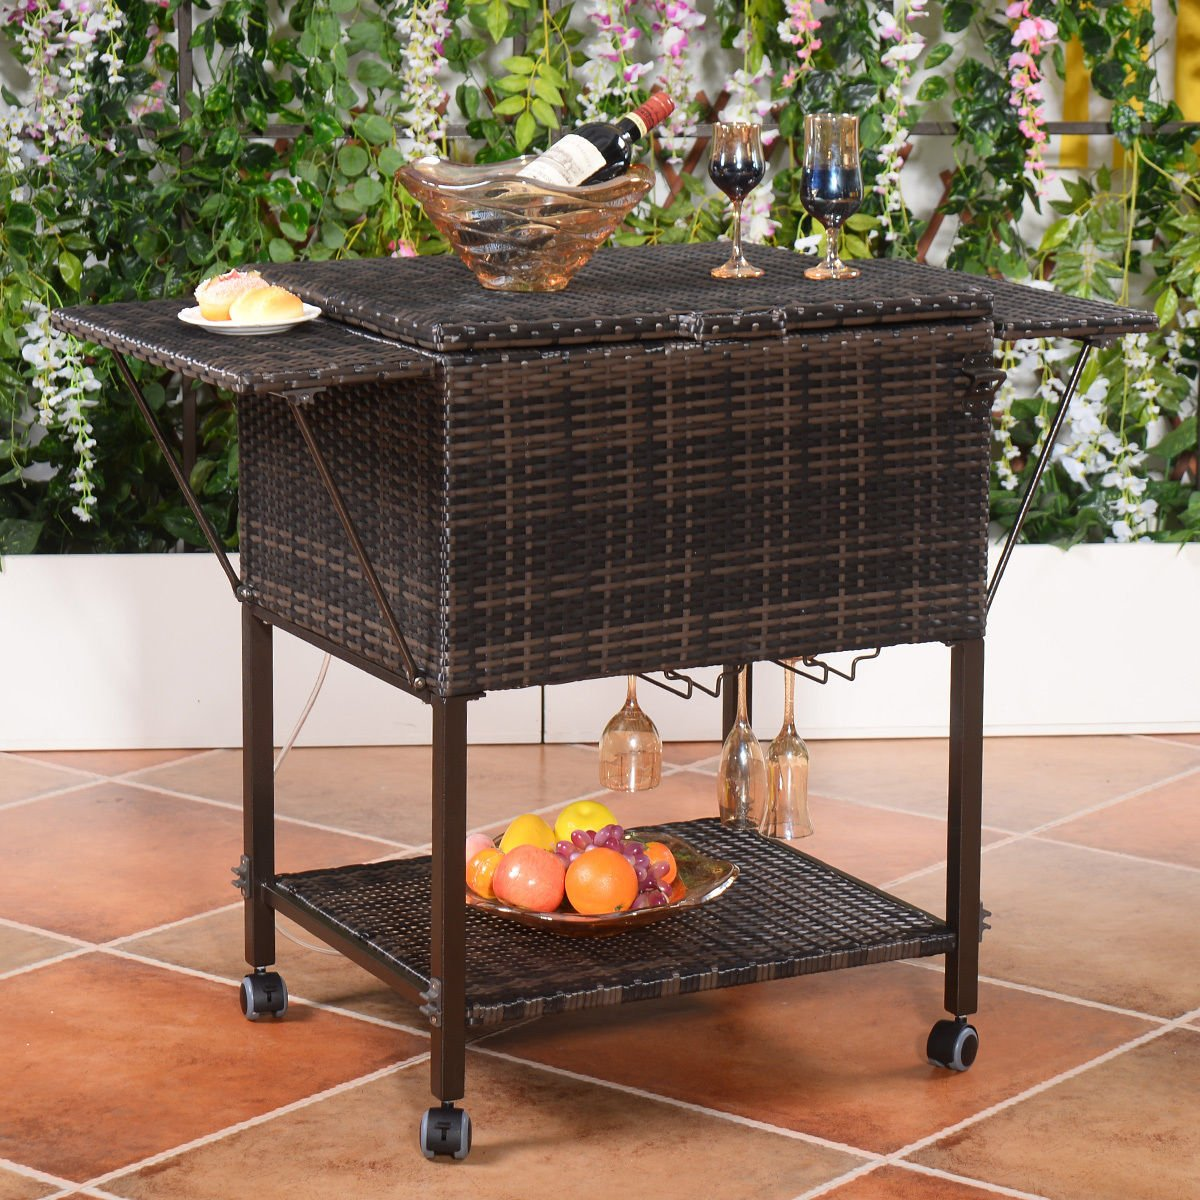 Amazon.com: Wicker Cooler Cart | Outdoor Serving Cart With Wheels For Patio  Bar And Classy Teak Look For Entertaining Guests In The Backyard, Garden,  Patio, ...